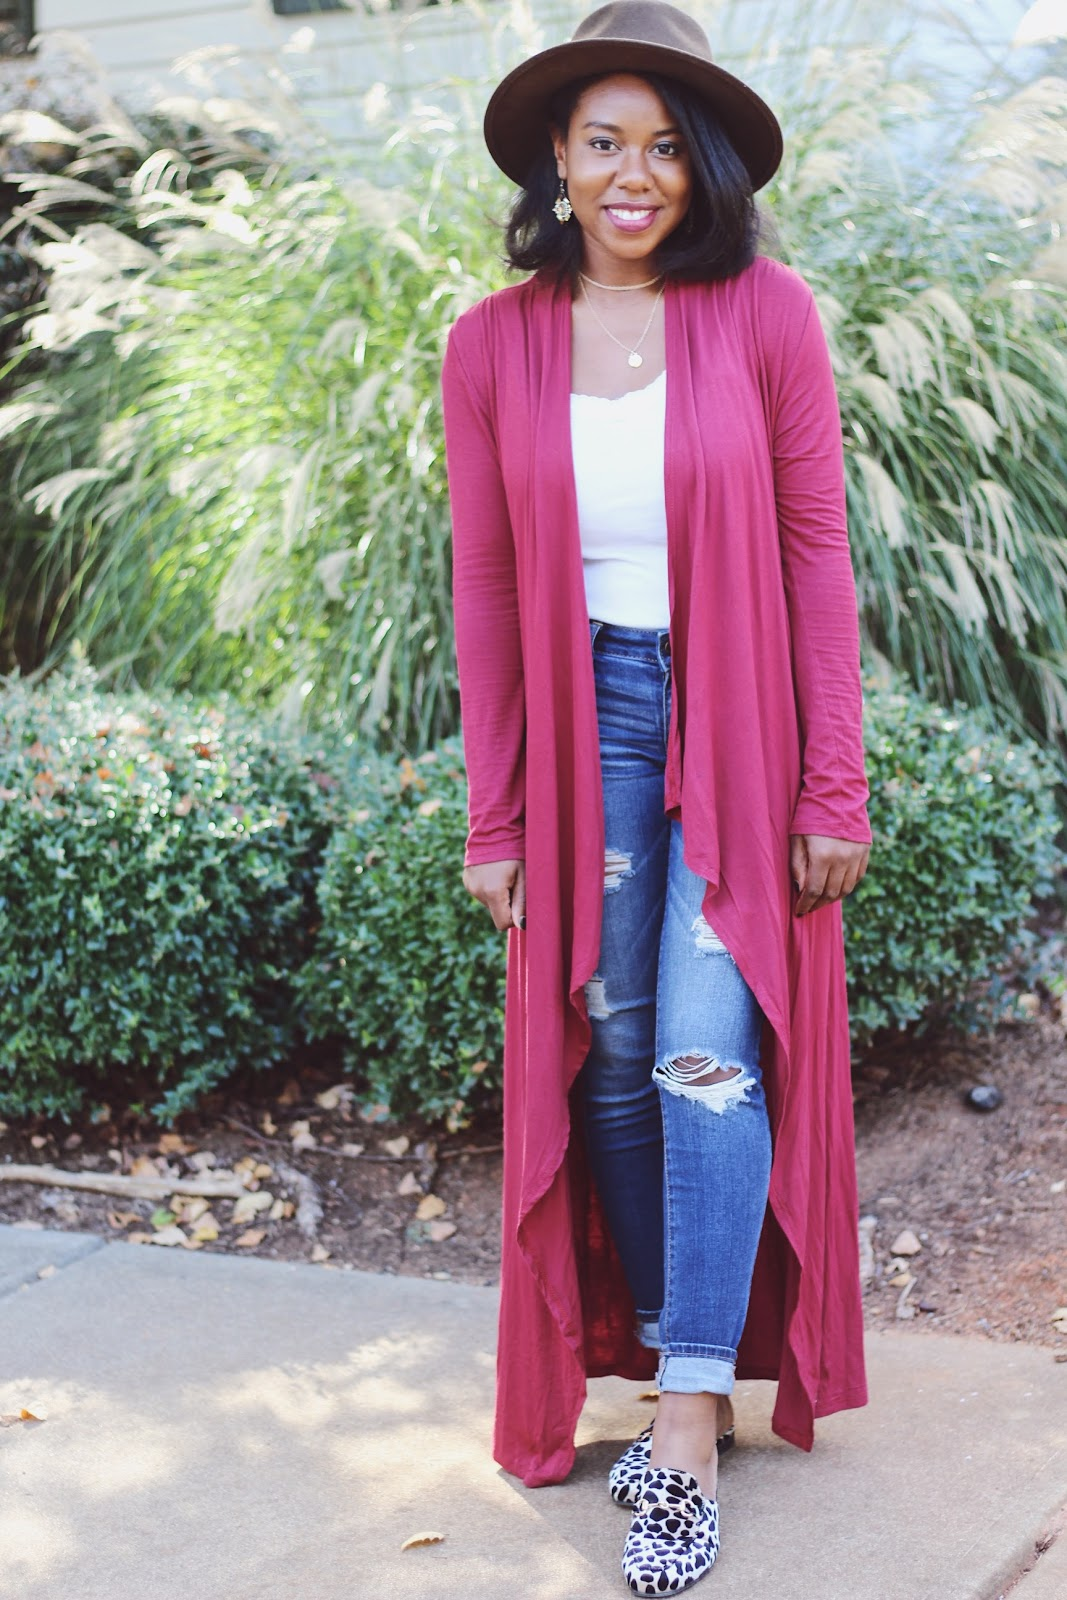 RED DUSTER CARDIGAN - Happiness, Joi, & Gloss